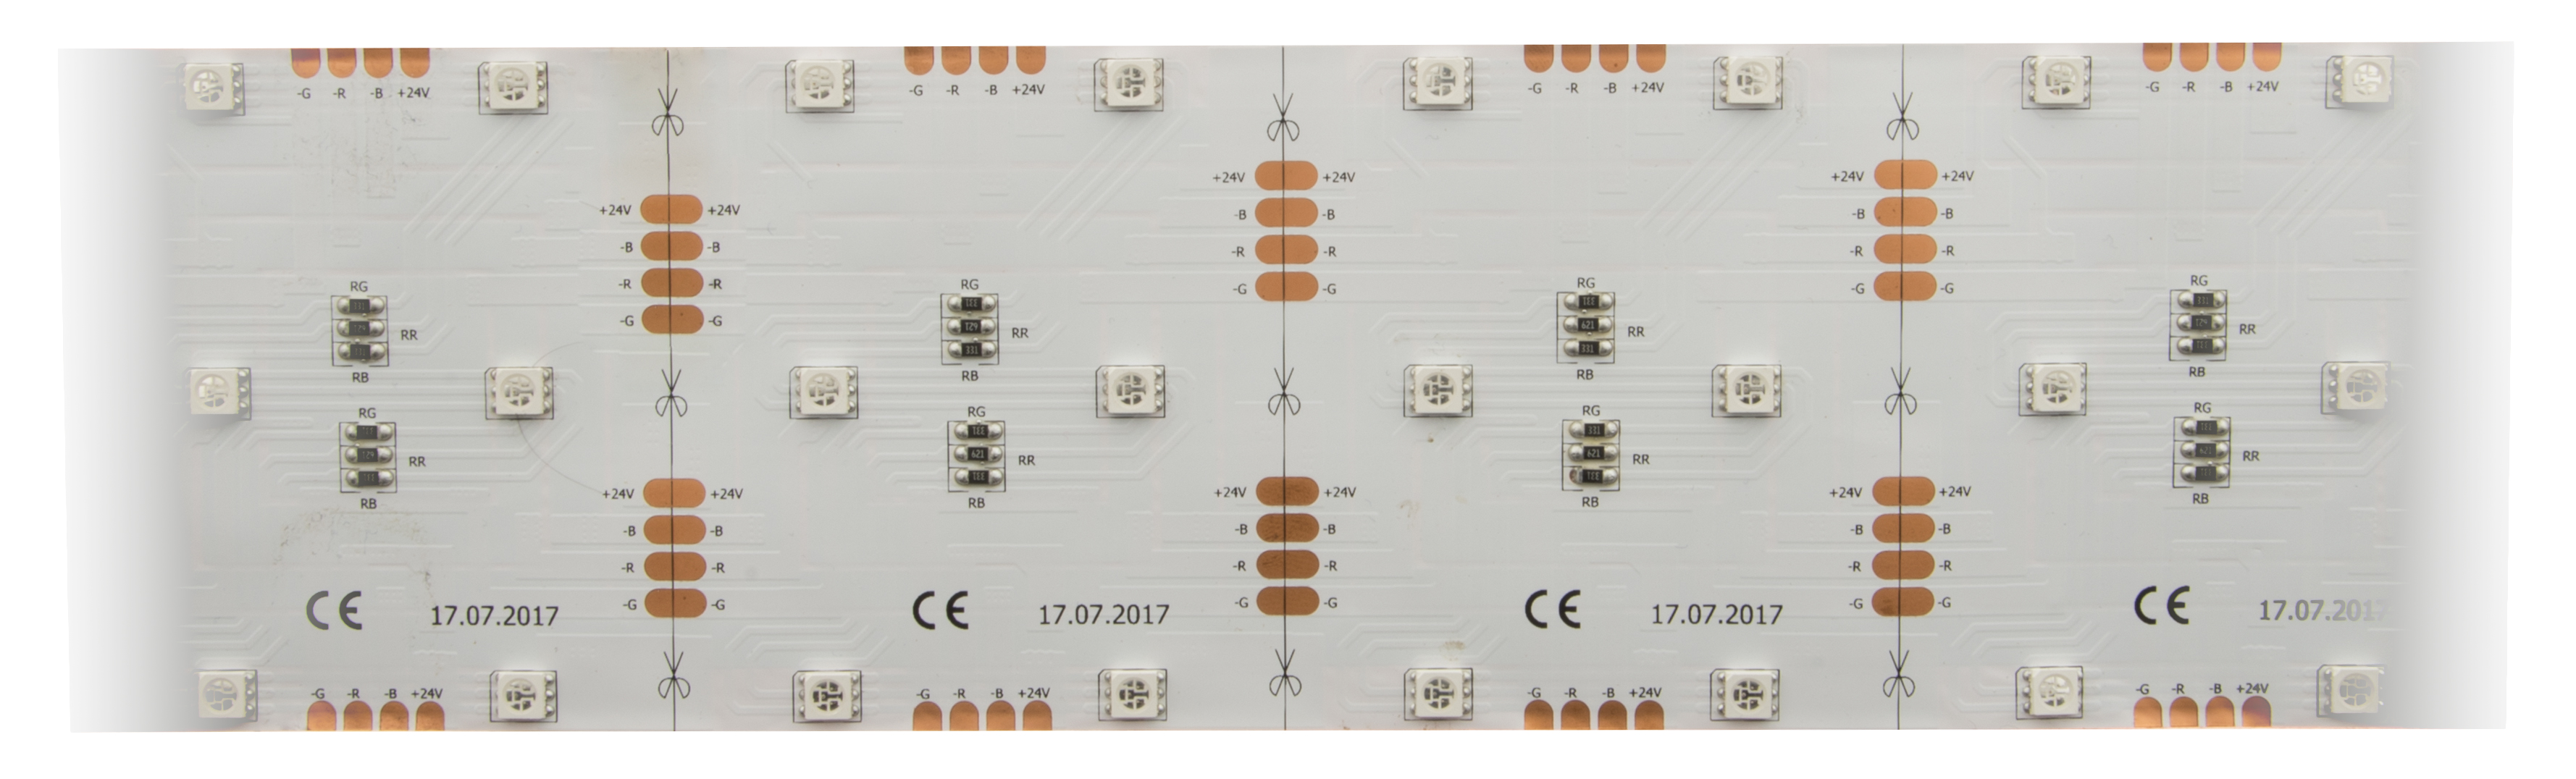 1 Stk LED Flexboard 7 RGB - IP20 LIFP101005